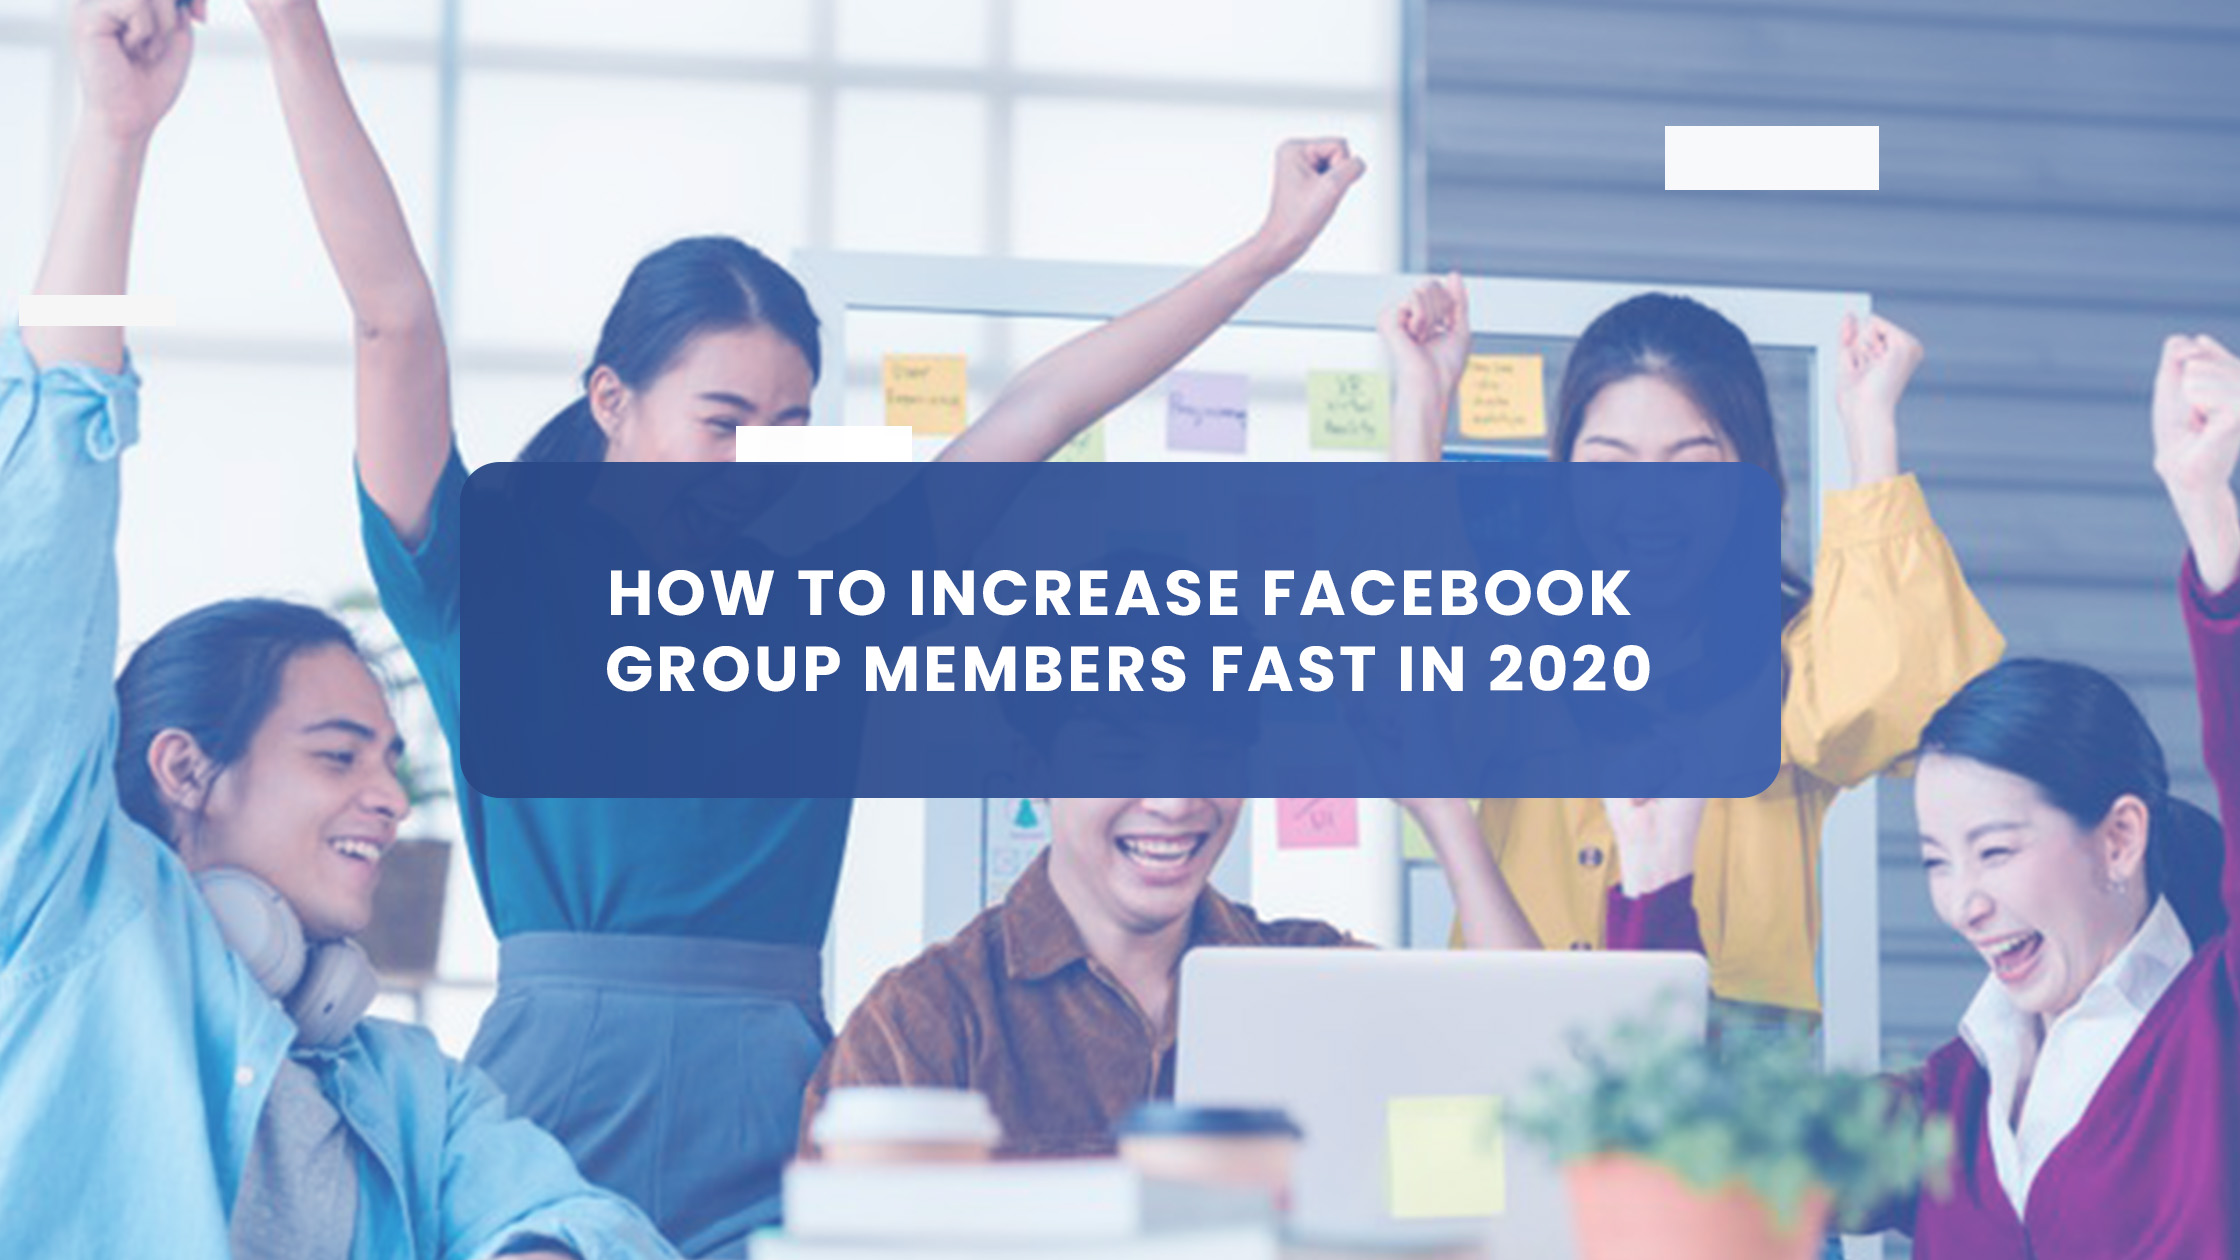 How to Increase Facebook Group Members Fast